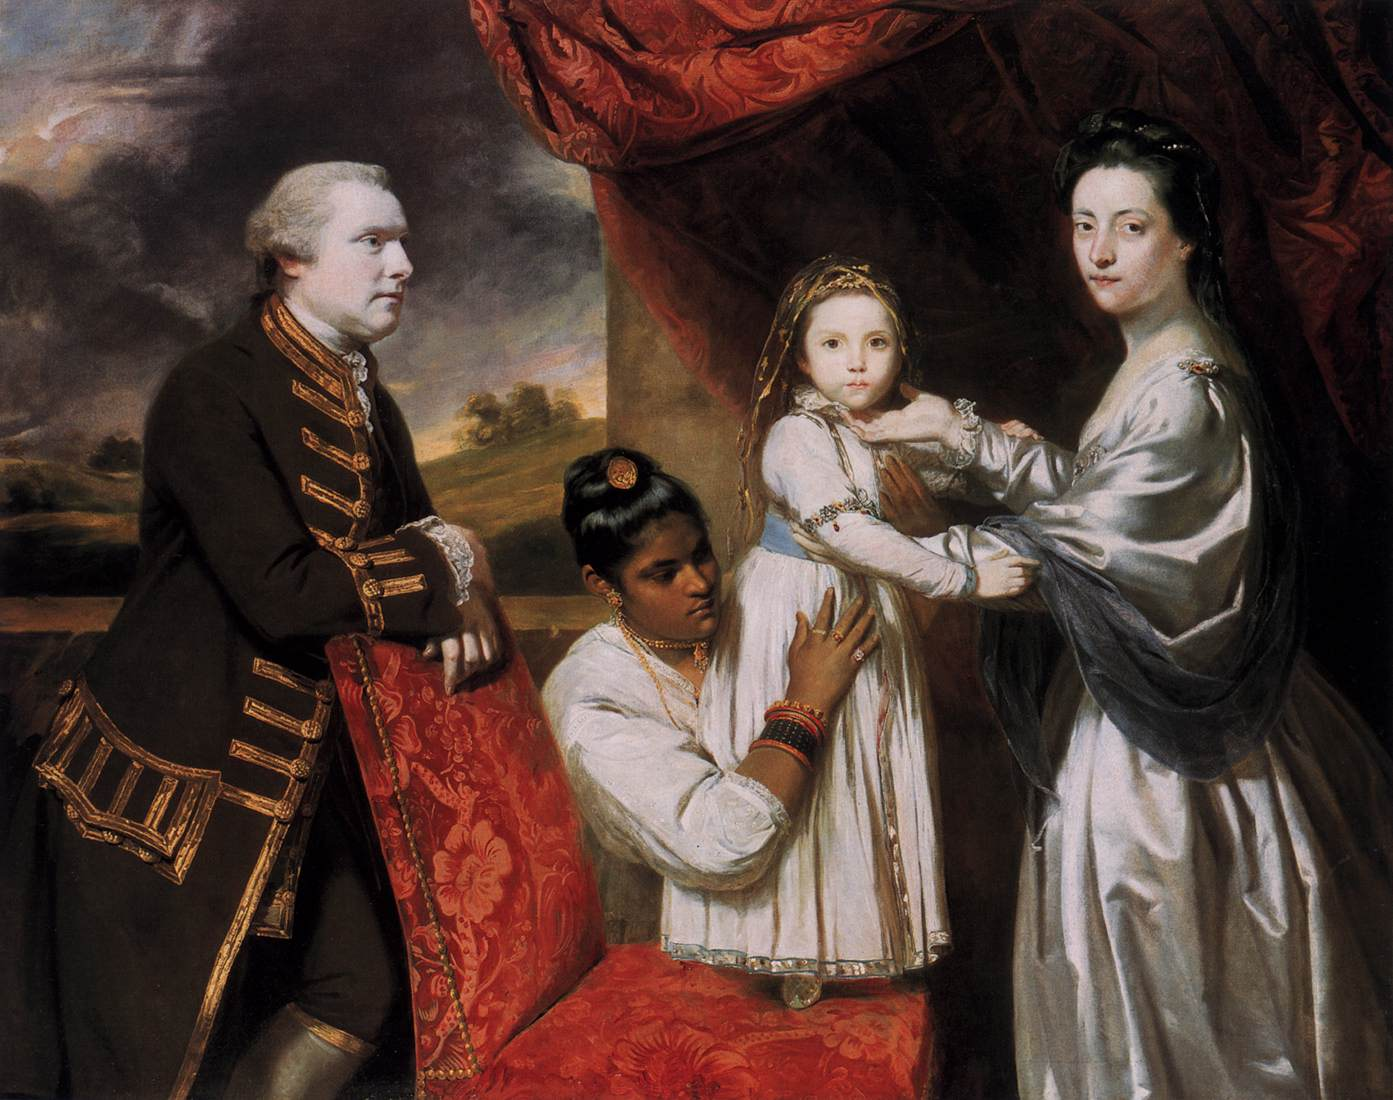 art culture essay in in joshua painter reynolds sir society Sir joshua reynolds ra frs  impact on reynolds was jonathan richardson's an essay on the theory of painting  members of the royal society of arts, .